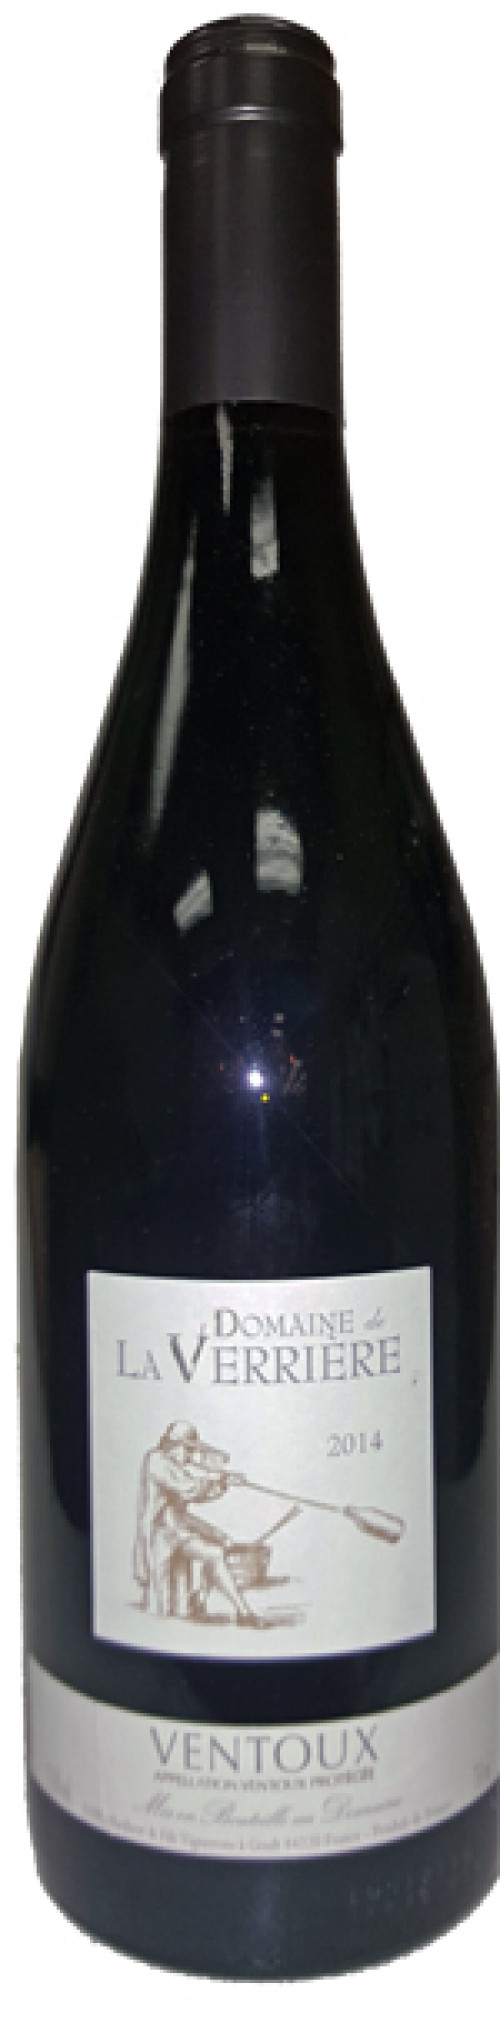 2014 La Verriere Rouge Ventoux 750ml